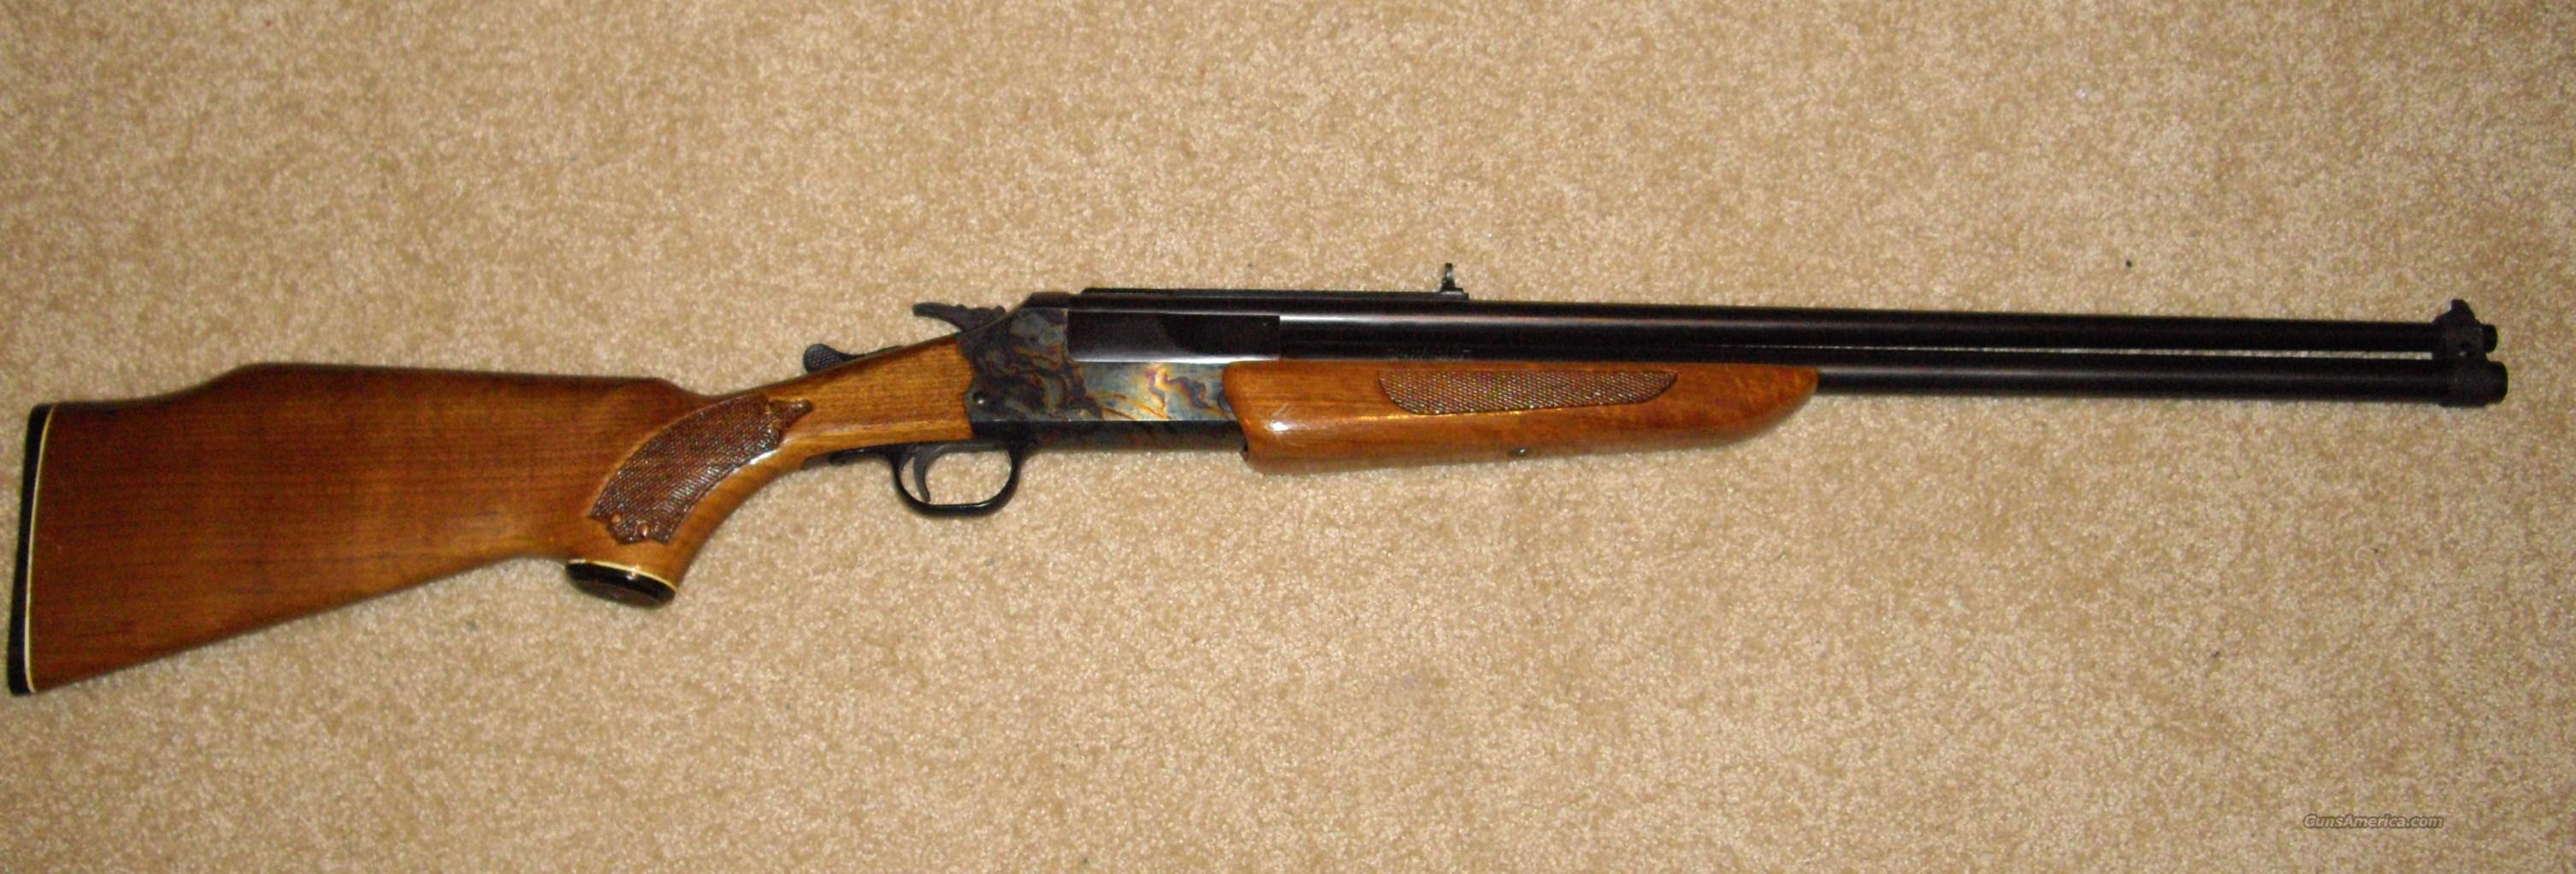 Savage model 24 V-A 30-30 win. over 20 gauge  Guns > Rifles > Savage Rifles > Other